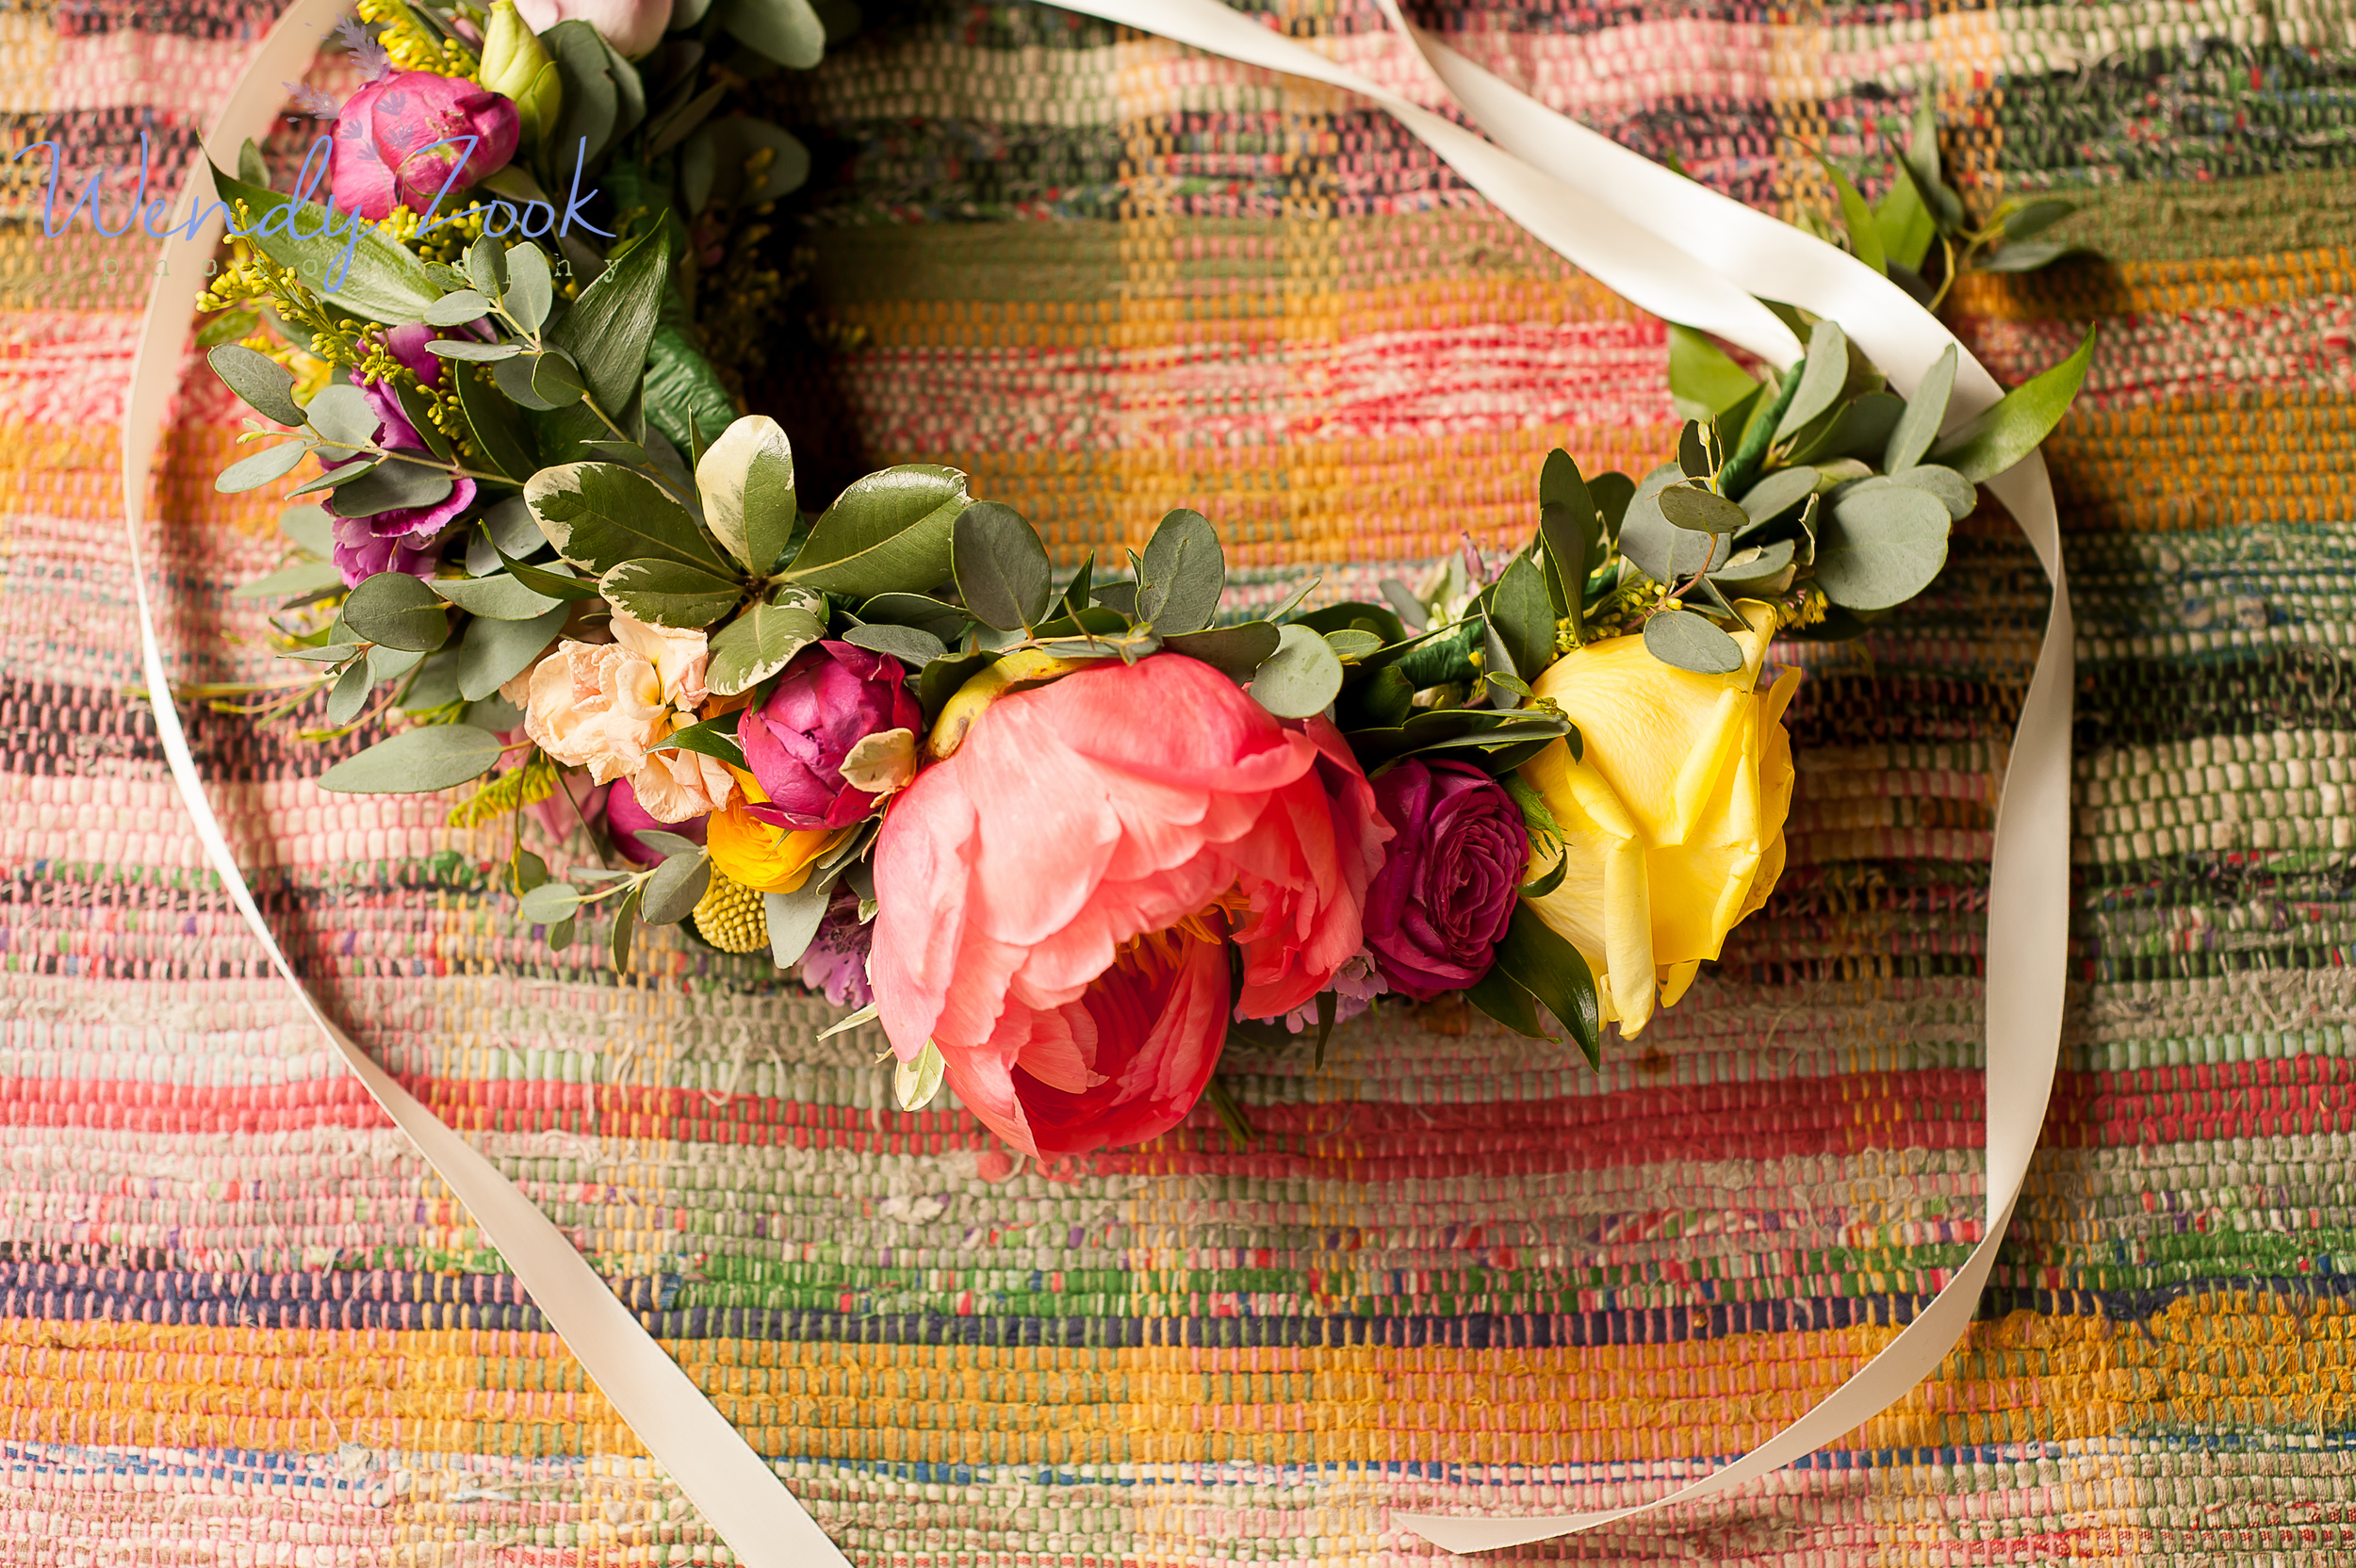 large-floral-crown-overhead-shot-on-rug-with-ribbon.jpg